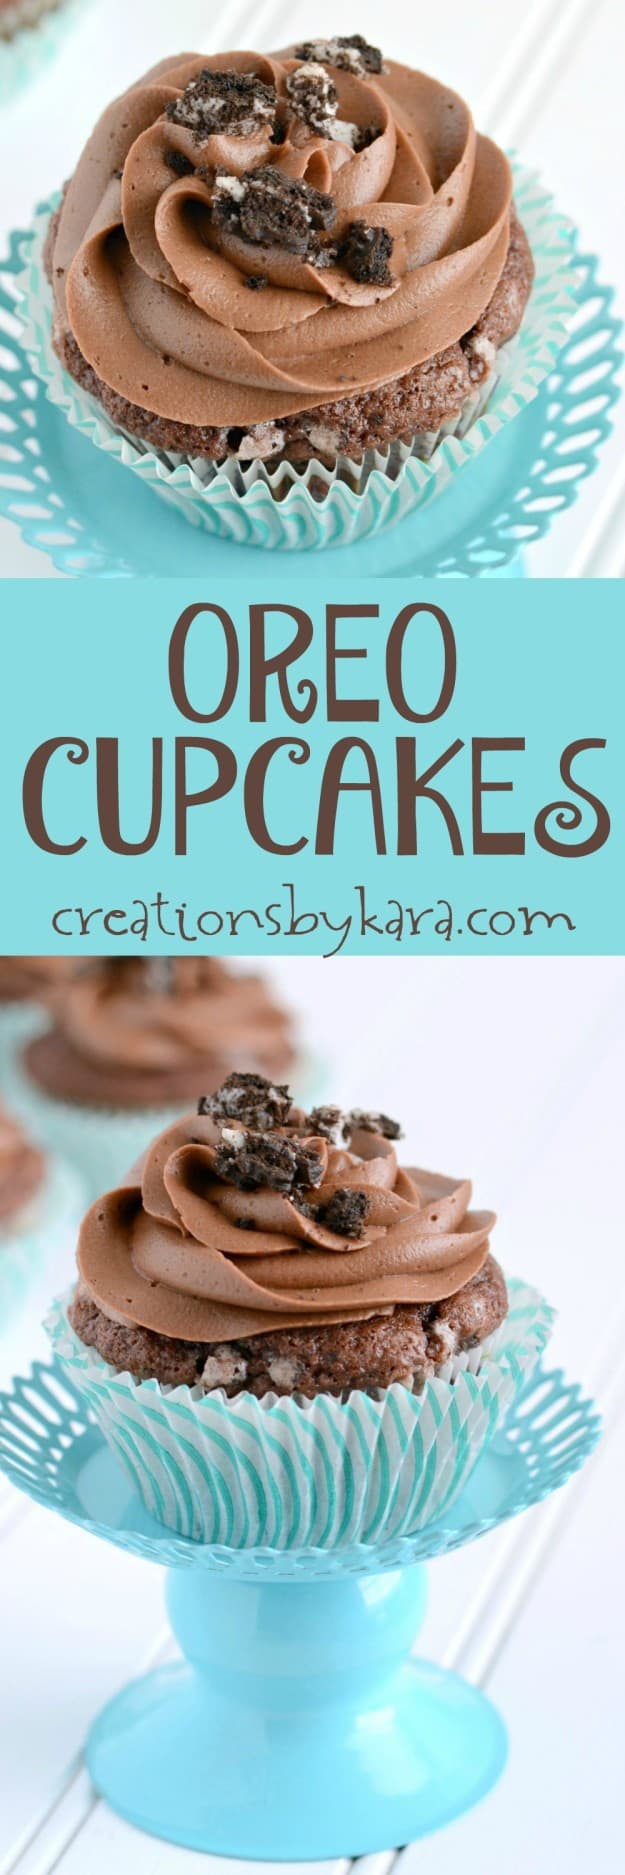 Moist and delicious Oreo Cupcakes with a killer Chocolate Frosting. Absolutely fantastic!